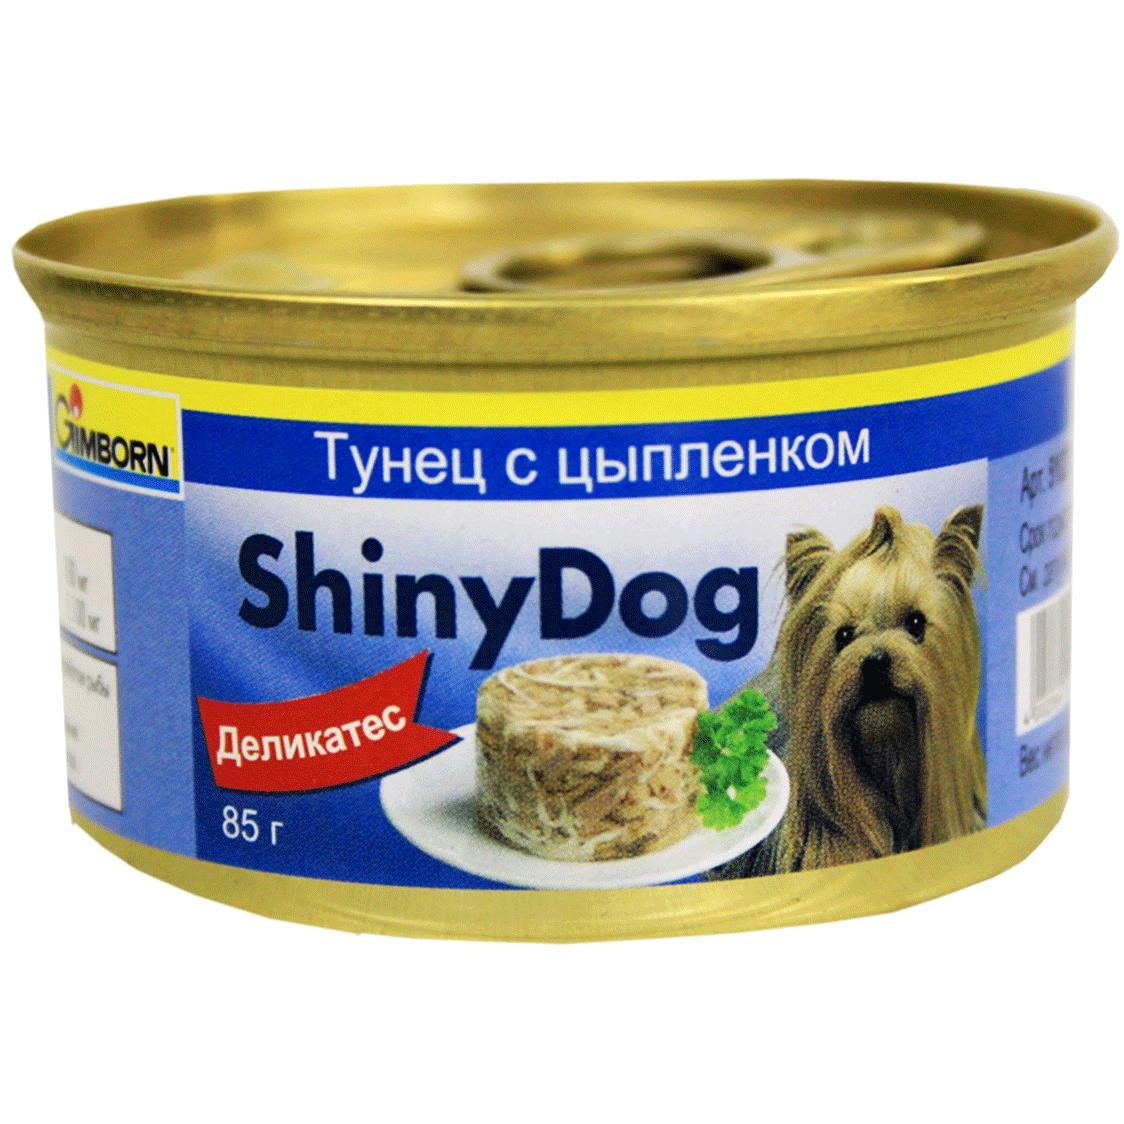 Gimborn Shiny Dog тунец/цыпленок 85г